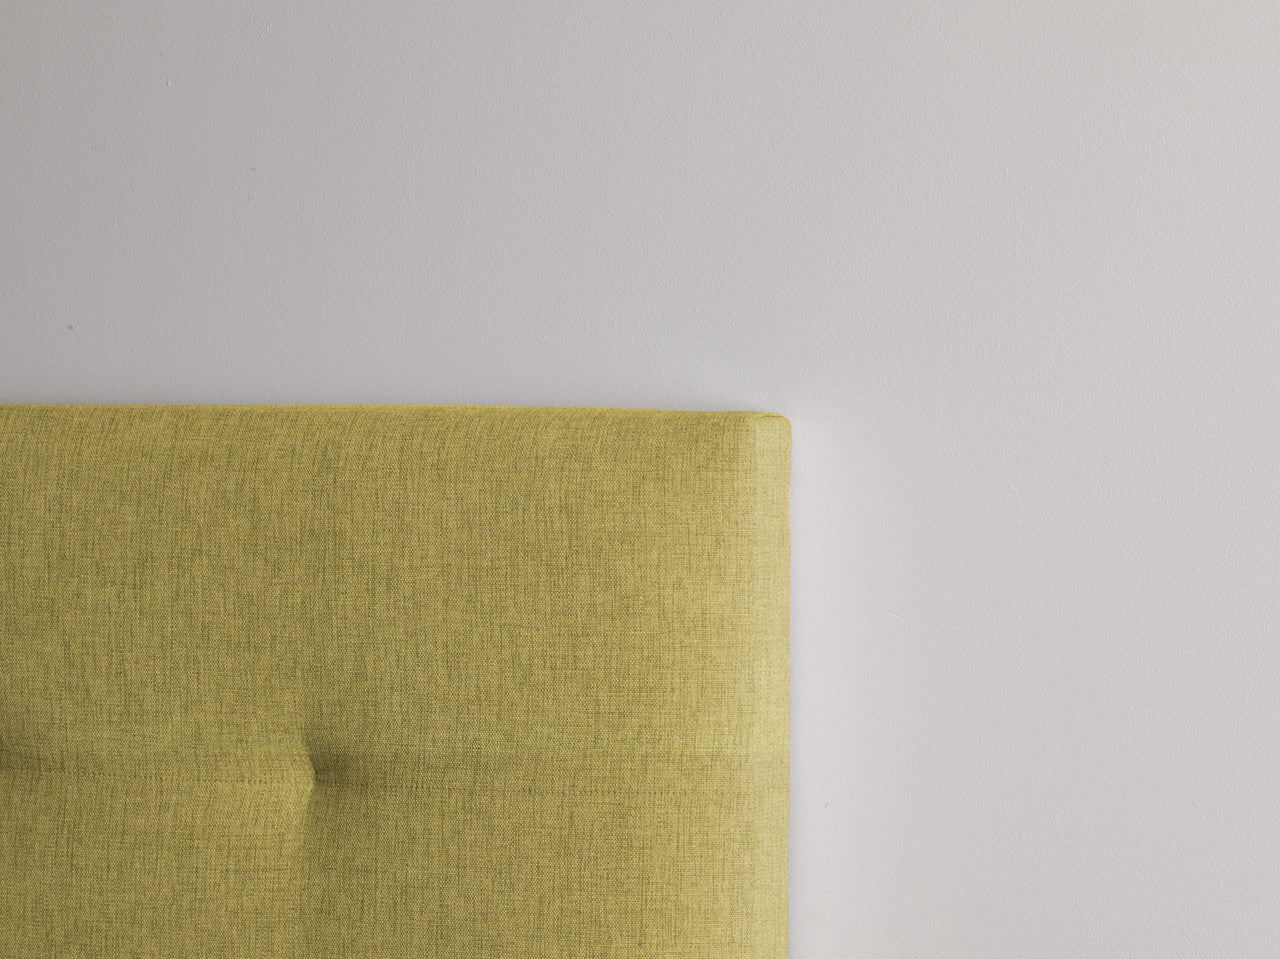 Optima Lemongrass fabric sample